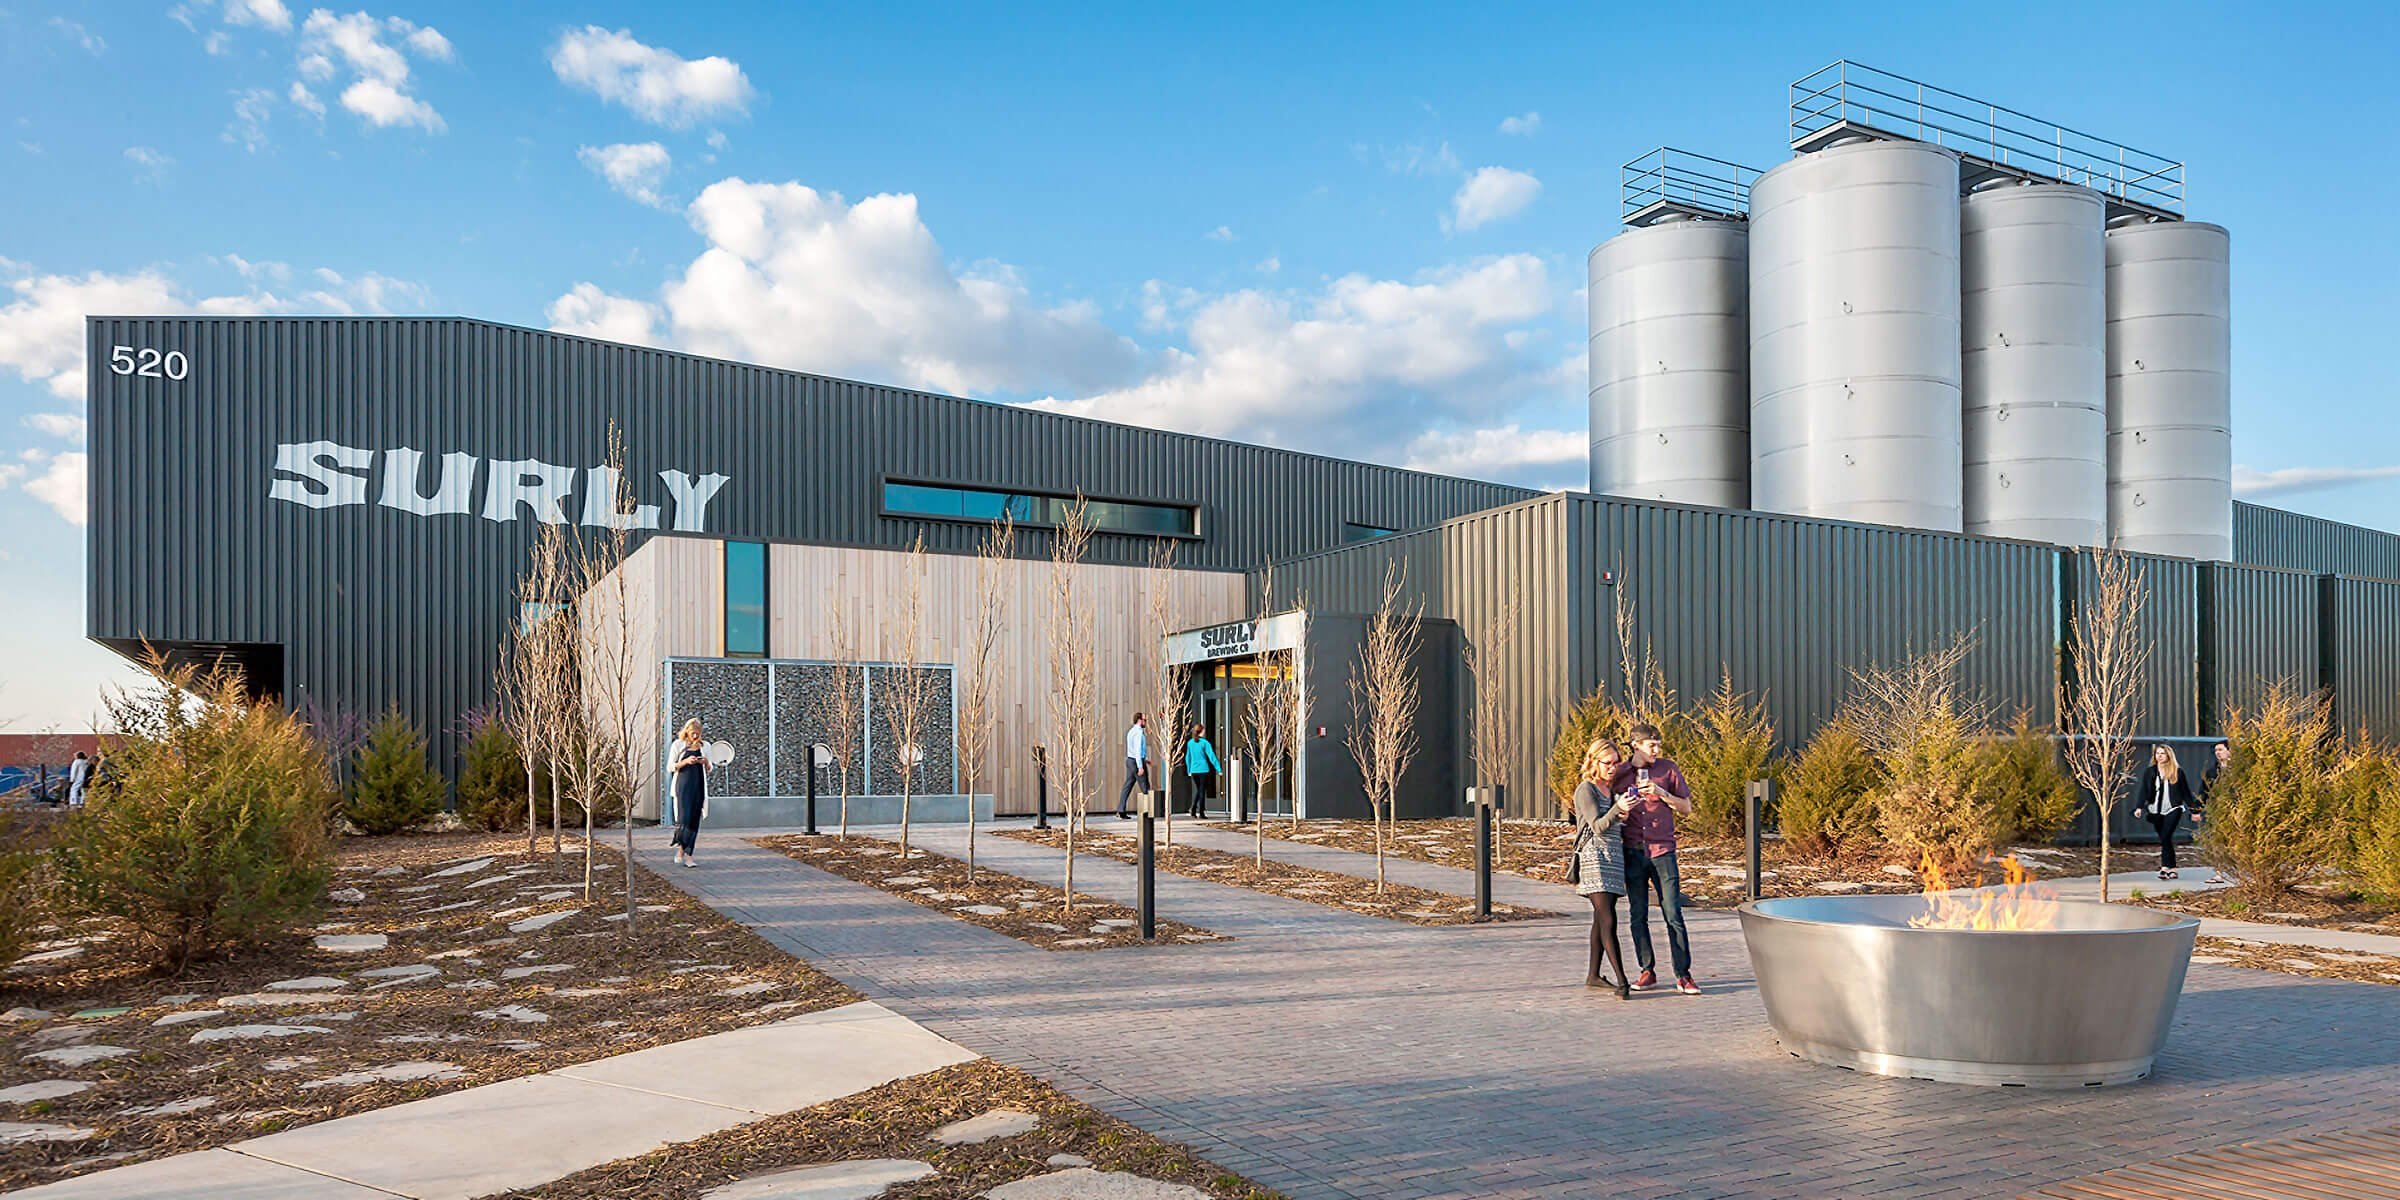 Outside the brewery of Surly Brewing Co. in Minneapolis, Minnesota